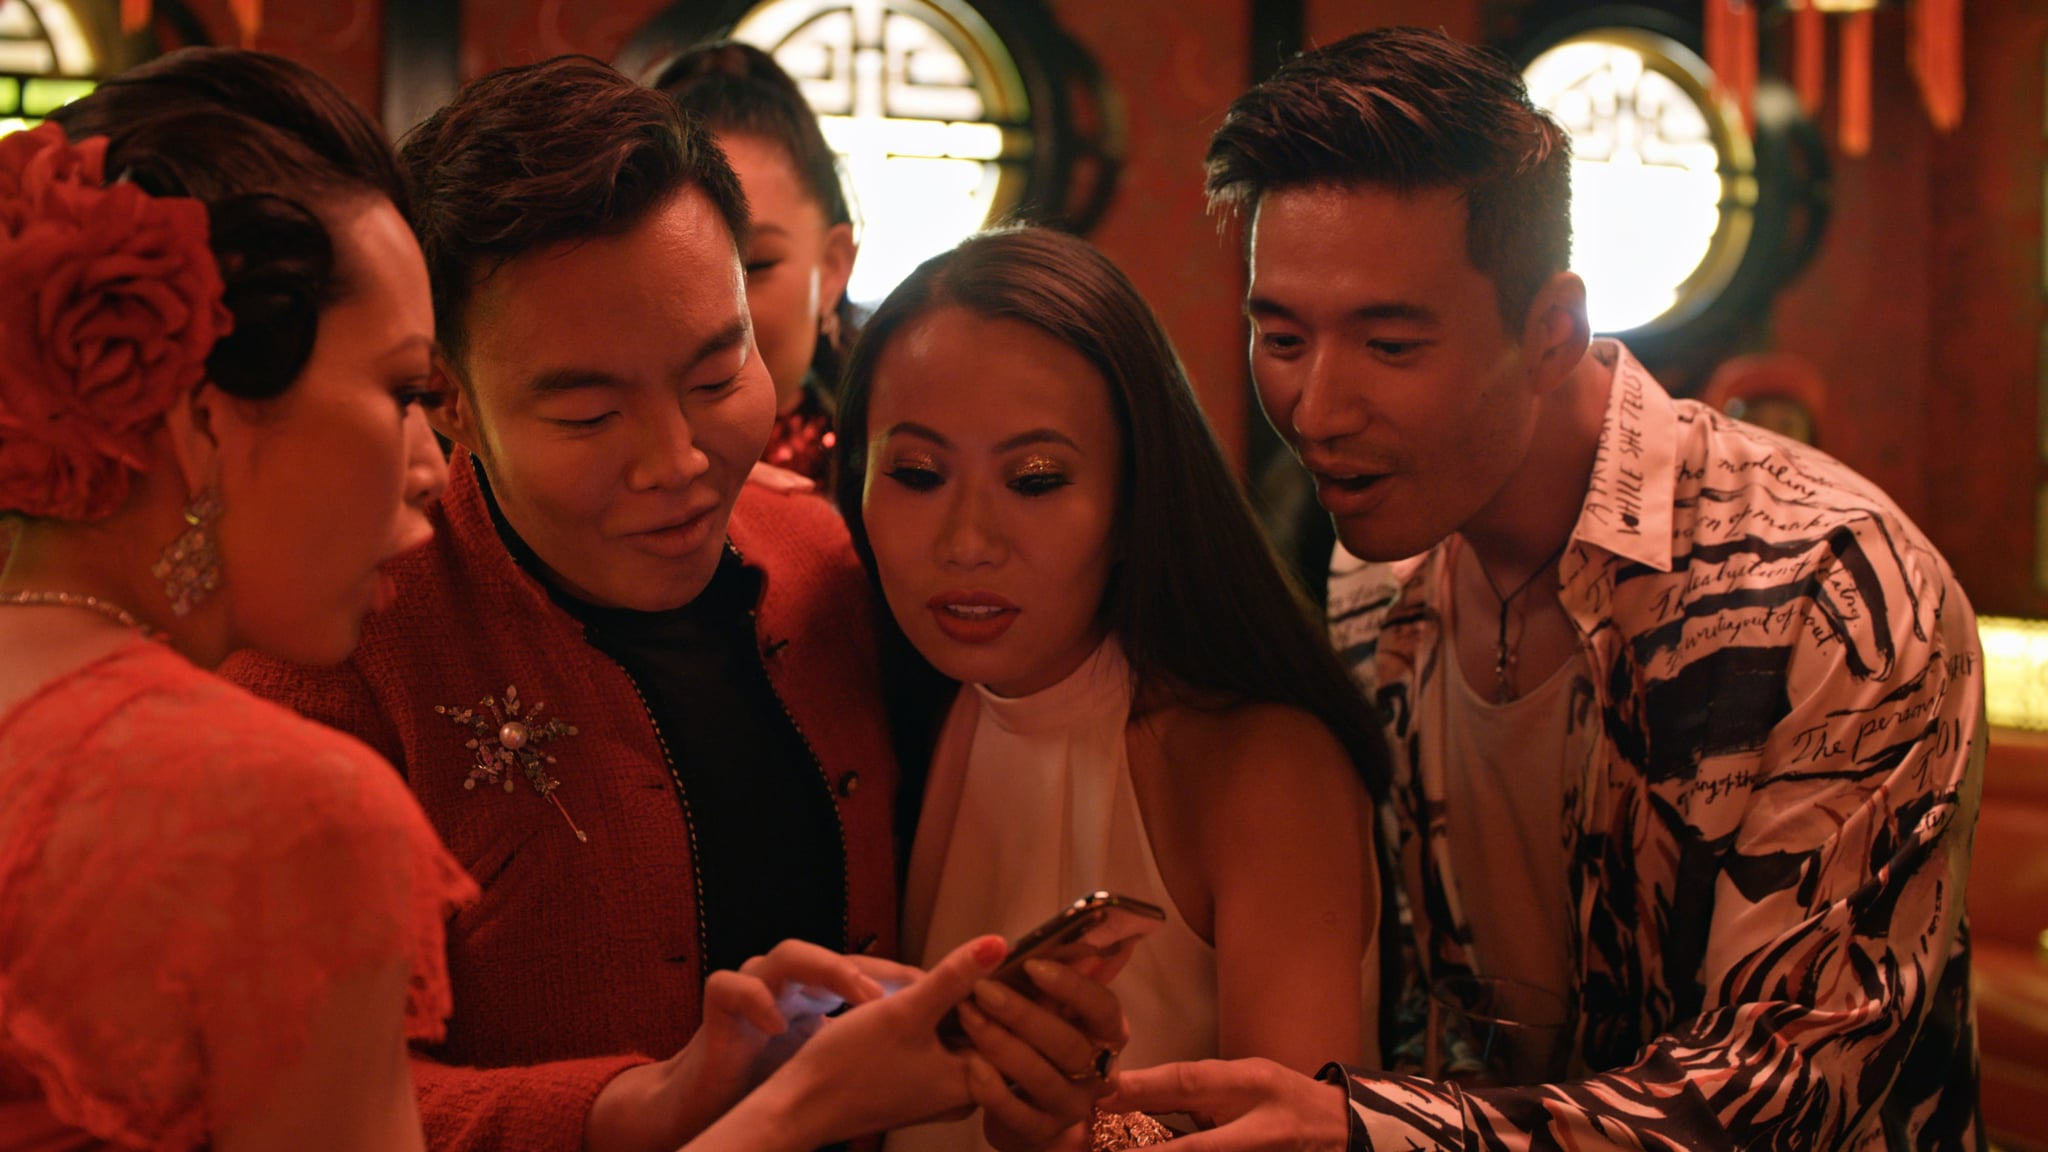 BLING EMPIRE, from left: Christine Chiu, Kane Lim, Kelly Mi Li, Kevin Kreider, What's in Anna's Shower?', (Season 1, ep. 103, aired Jan. 15, 2021). photo: Netflix / Courtesy Everett Collection